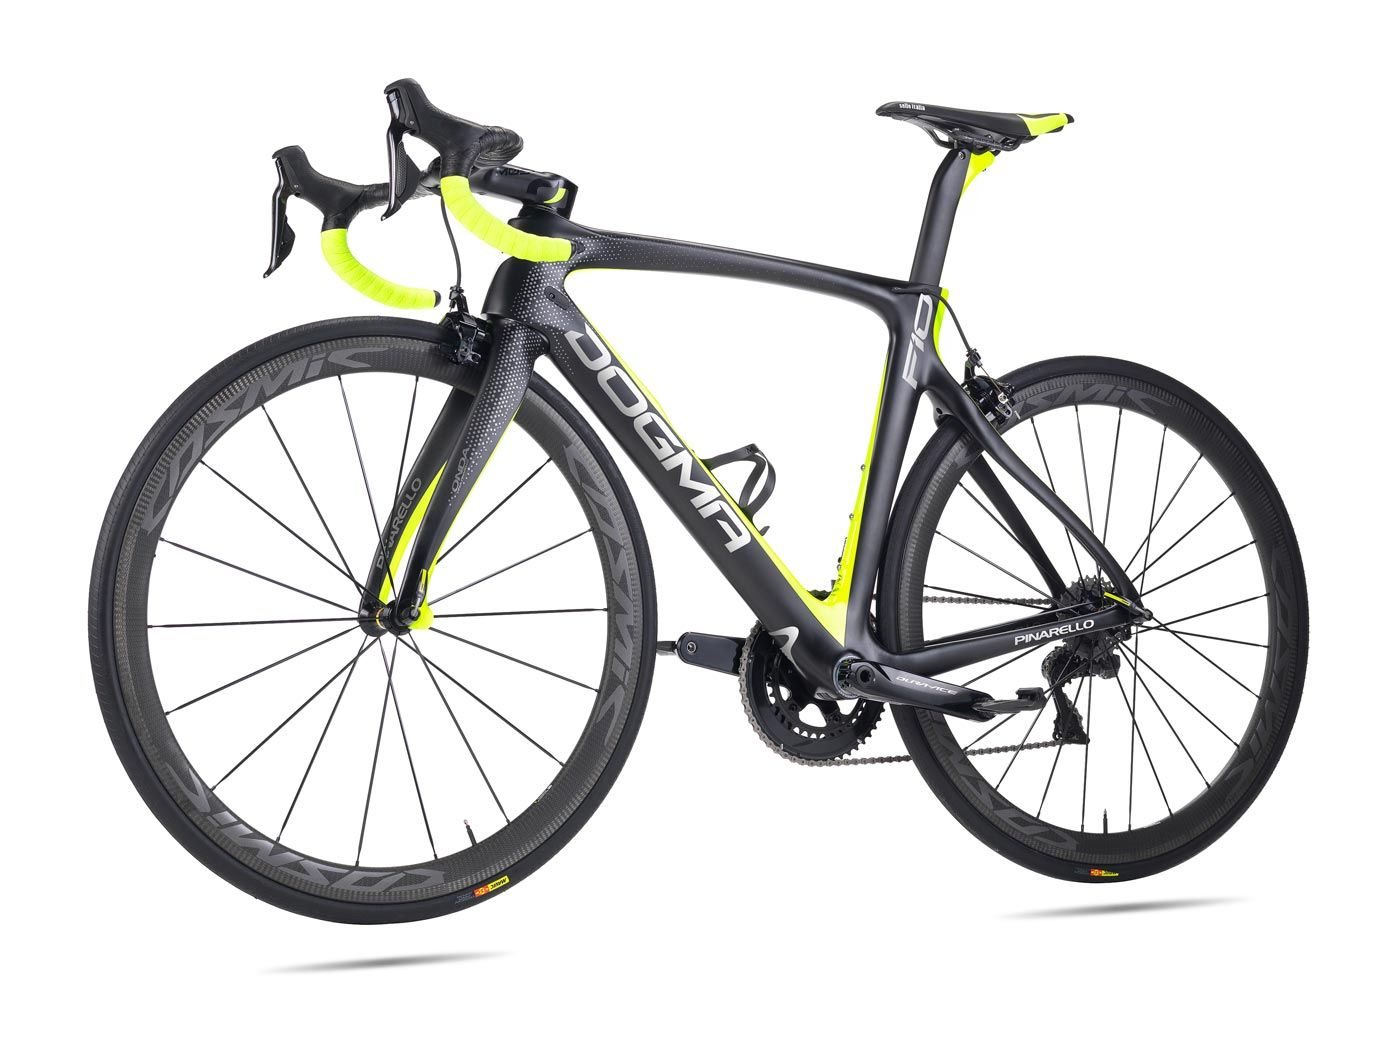 The Pinarello Dogma F10 Was Unleashed Today Incorporating All Of